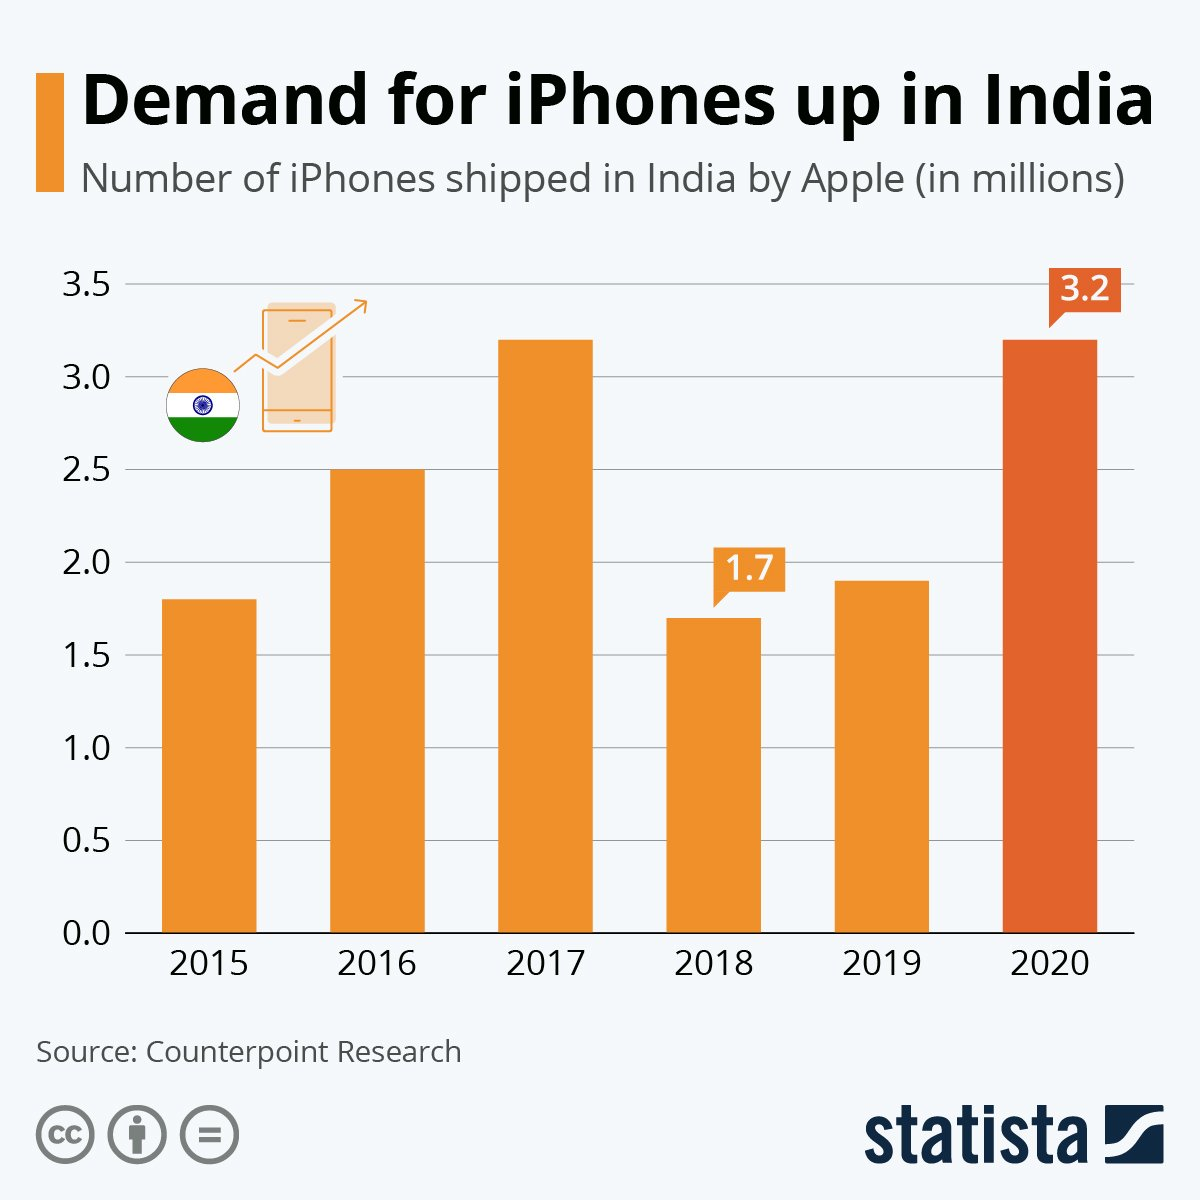 The demand for iPhones went up in India